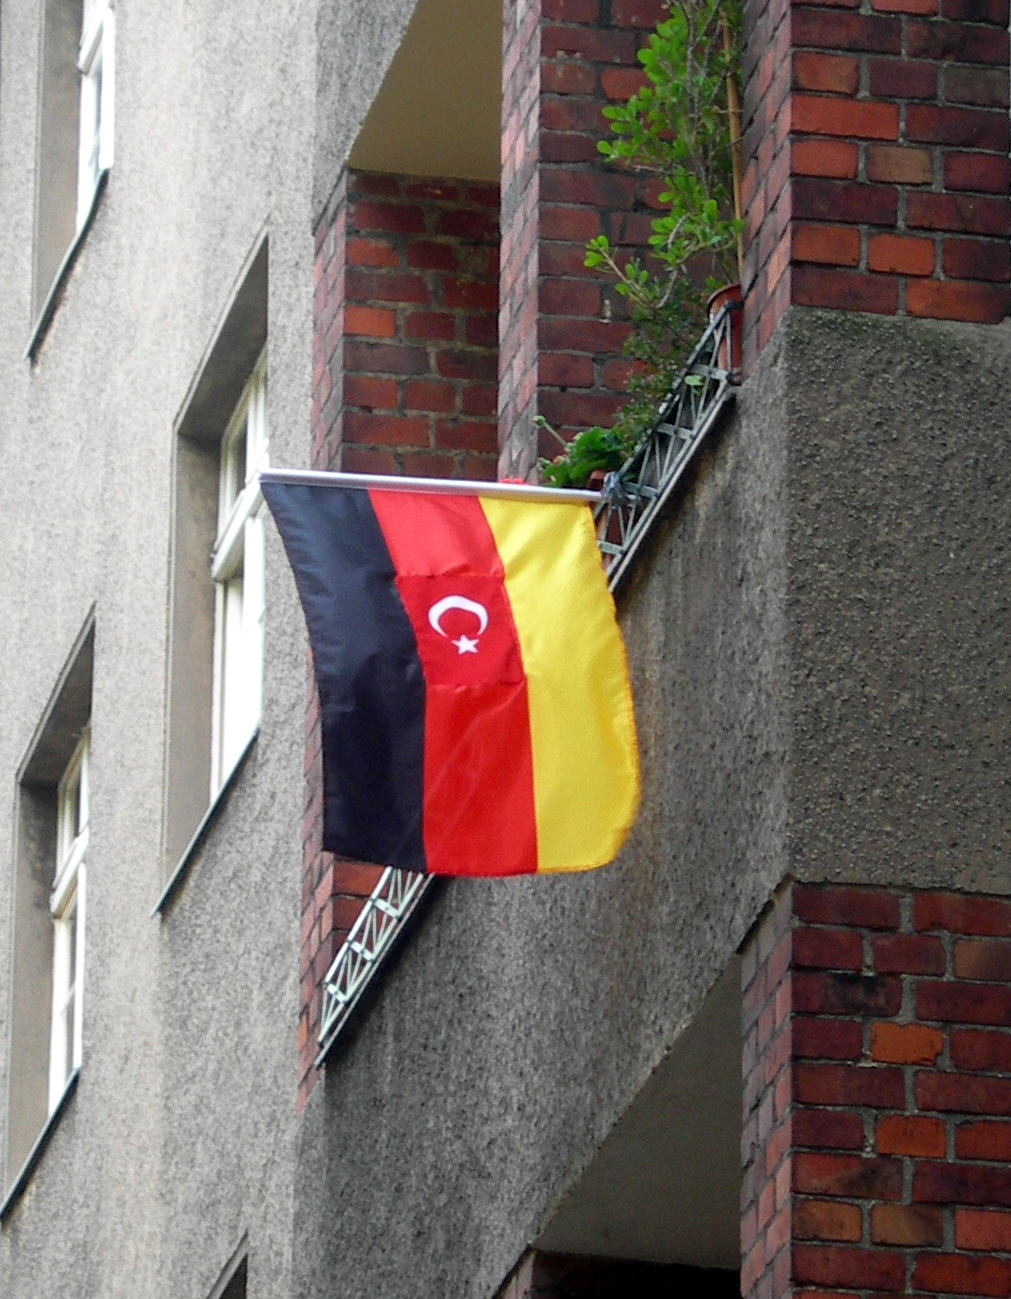 Religiosity, integration, participation: new survey on the attitudes and experiences of citizens of Turkish descent in Germany